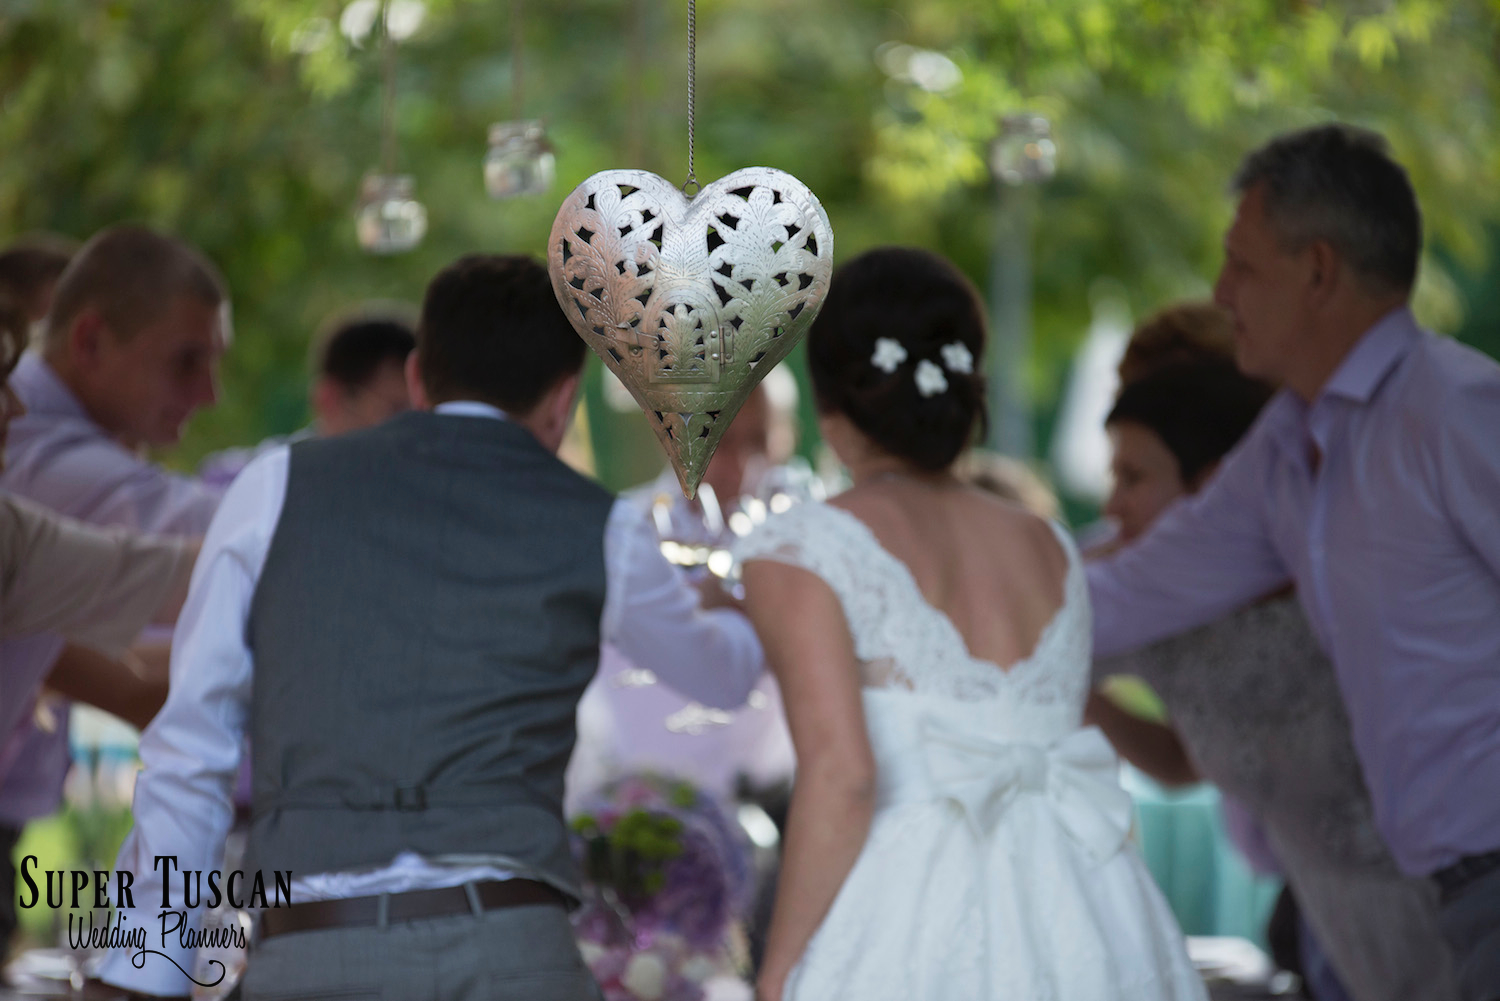 69Wedding on Trasimeno Lake - Umbria